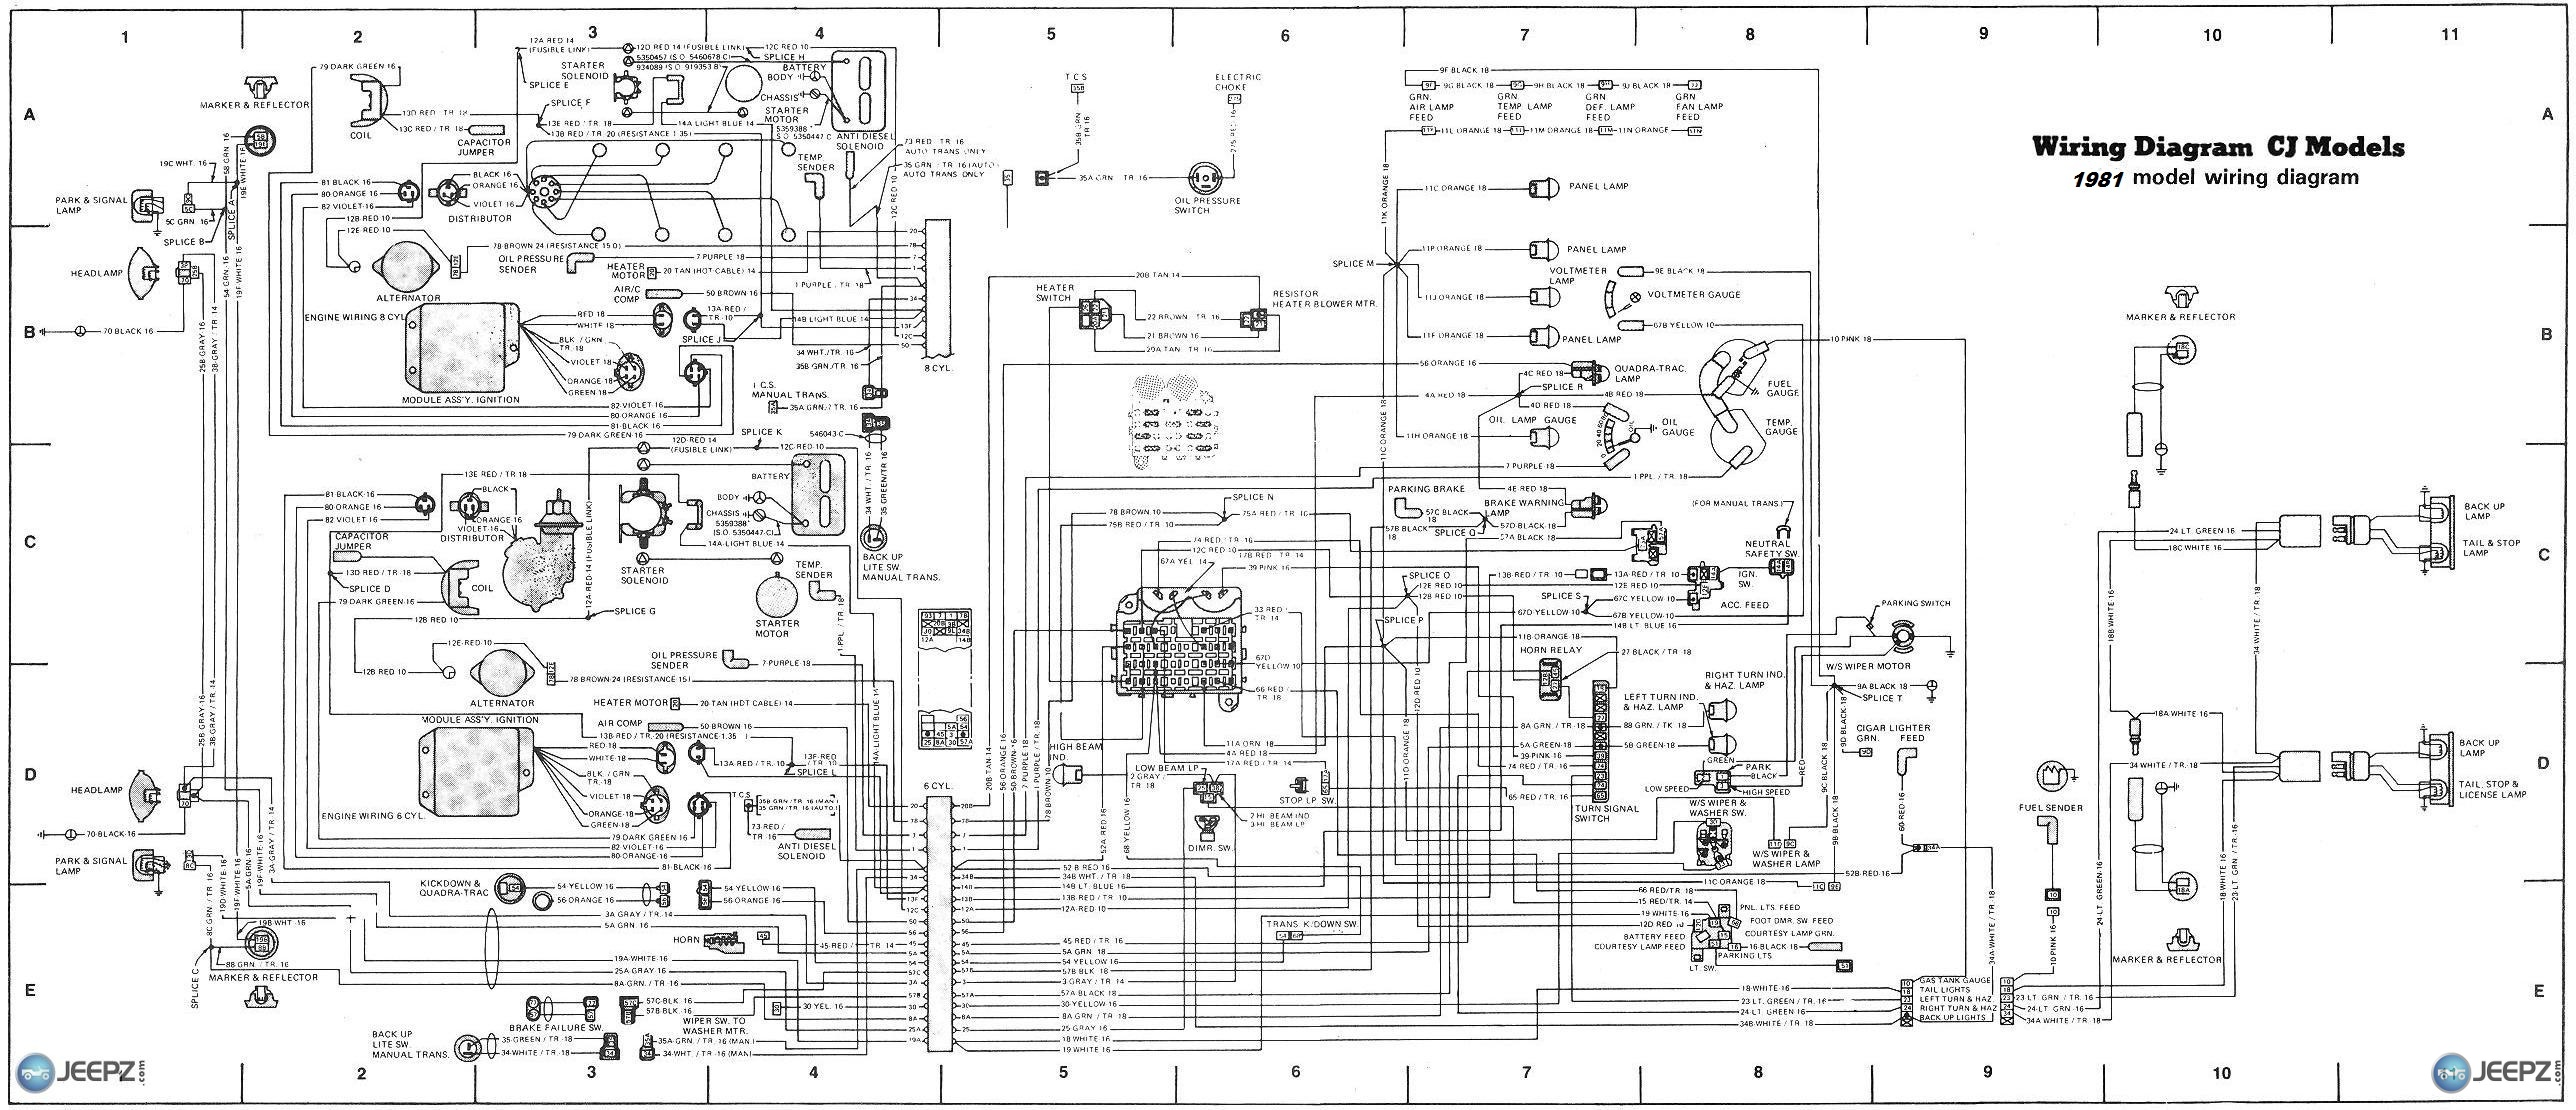 large cj7 wiring diagram large wiring diagrams cars 81 scrambler referb archive jeep cj 8 scrambler forums description large cj wiring diagram